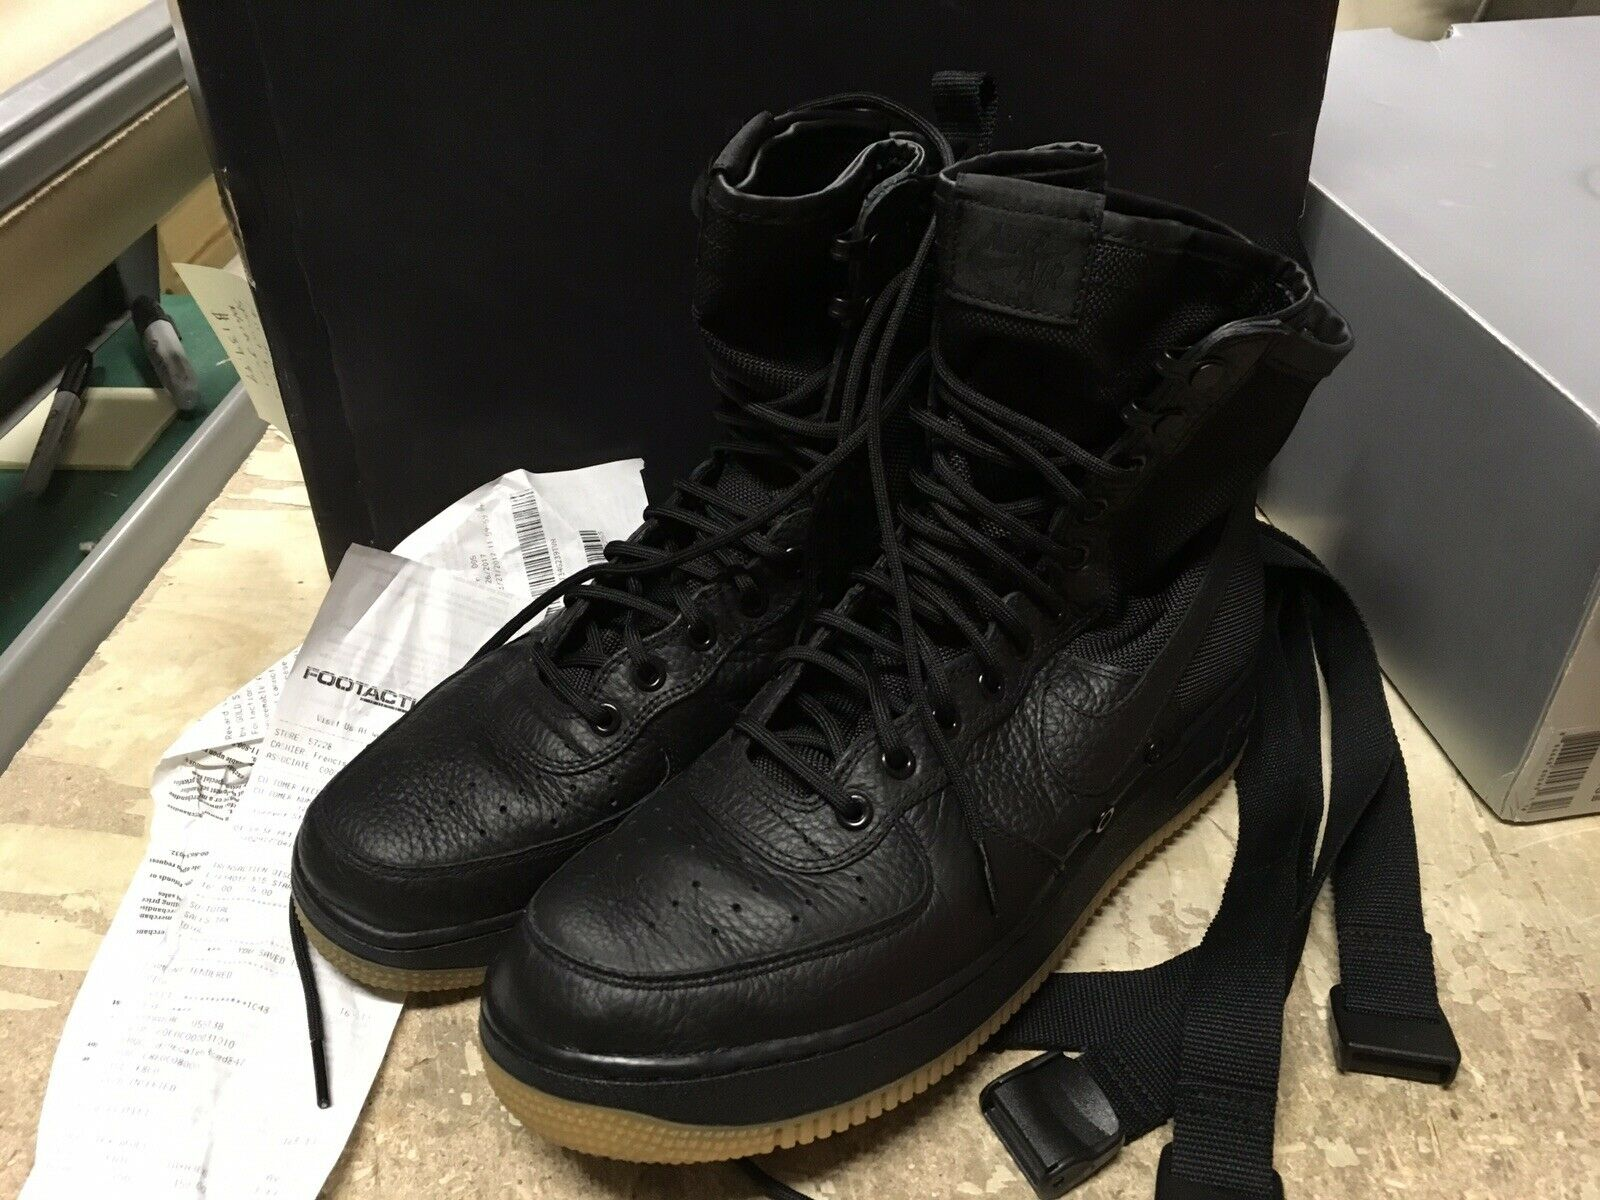 USED MENS NIKE SF AF1 AIR FORCE 1 SPECIAL FORCES BLACK GUM 864024 001 SZ 10.5